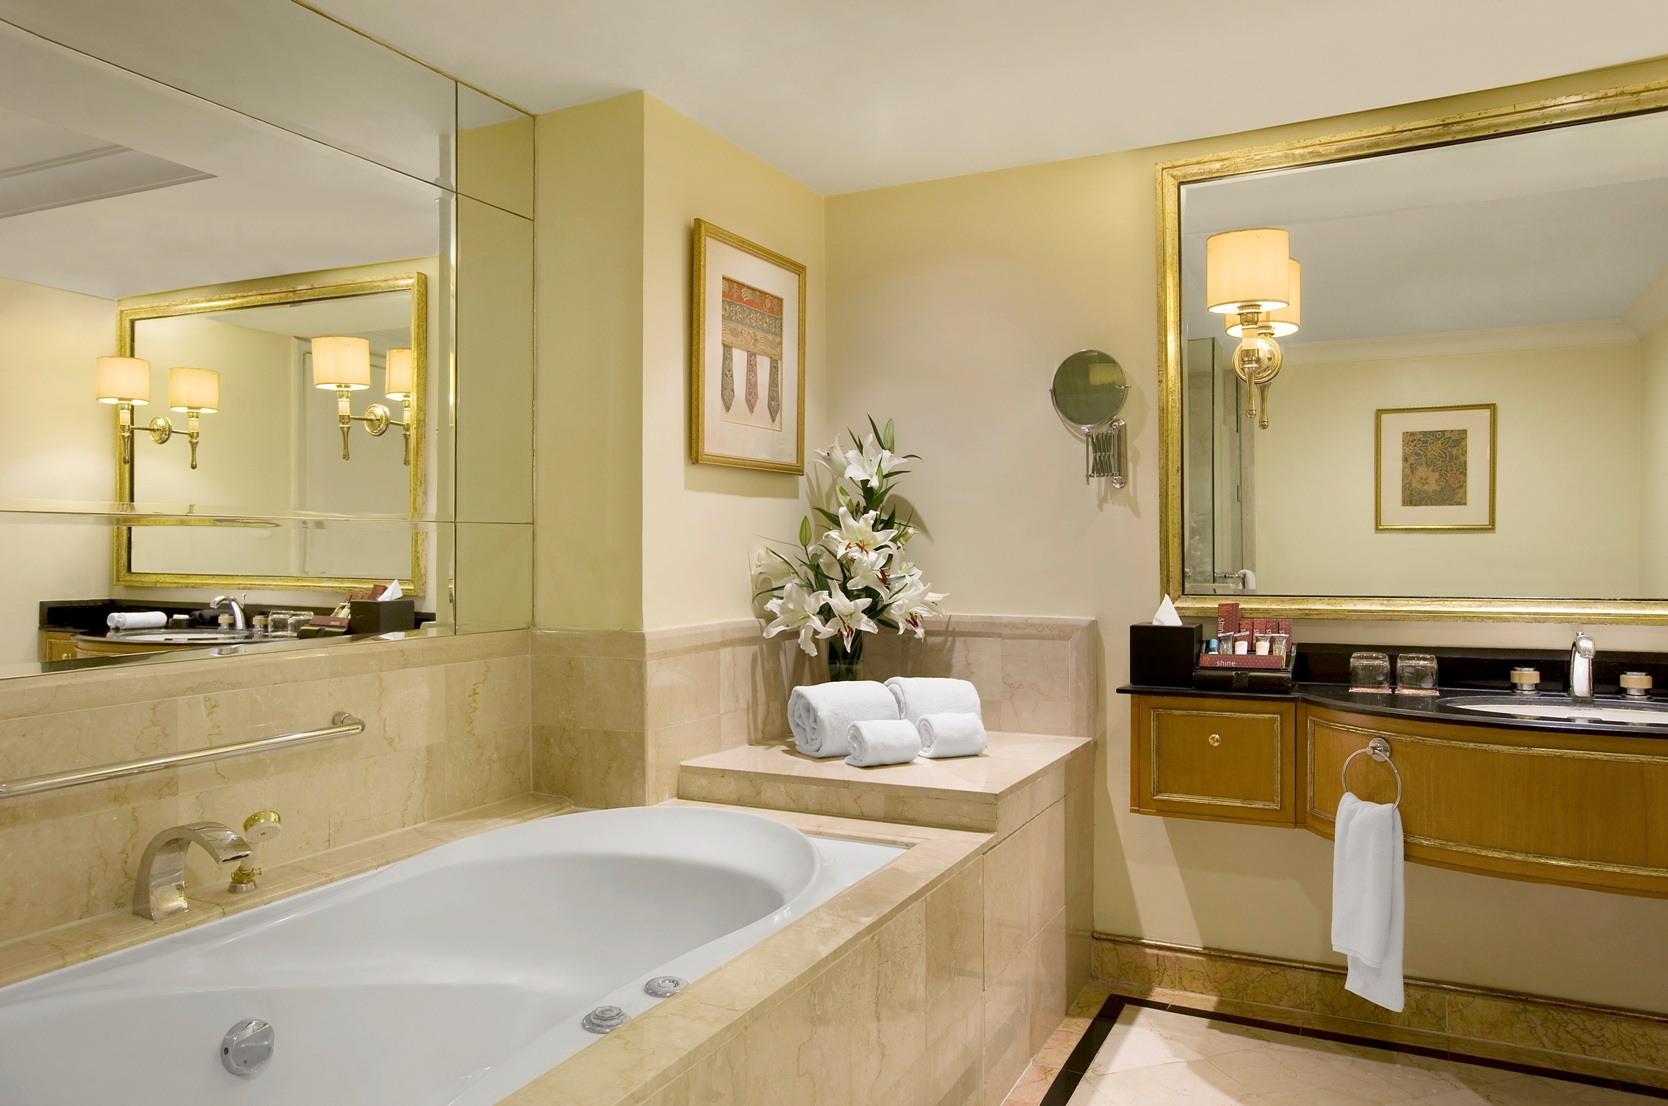 New Bathroom Style Inc Review